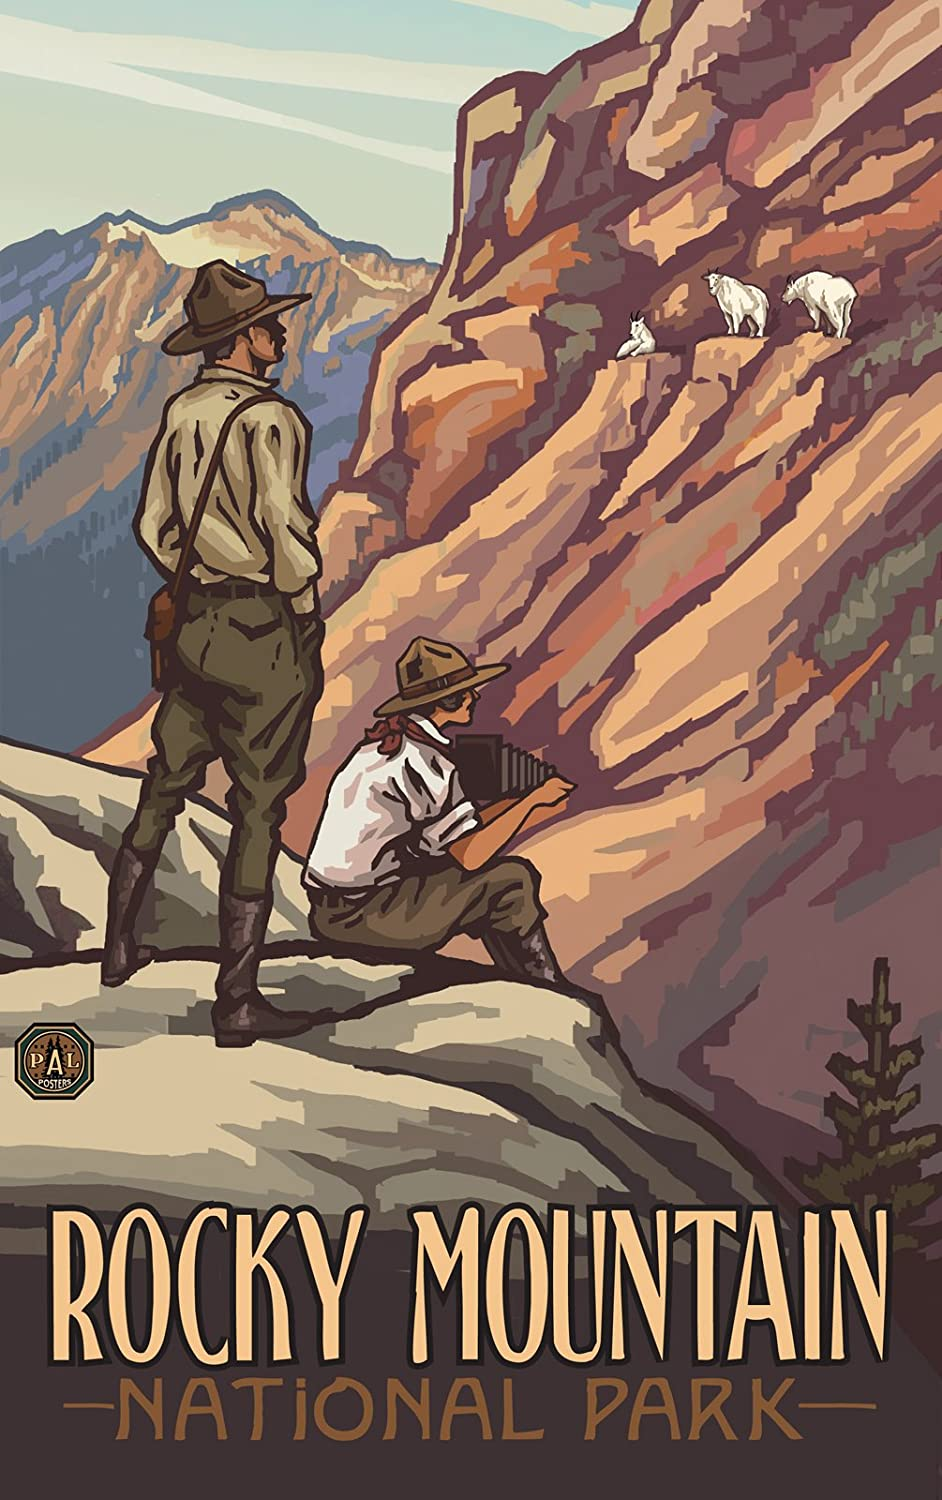 Lanquist Northwest Art Mall Rocky Mountain National Park Park Rangers PRG Wall Art by Paul A 11-Inch by 17-Inch